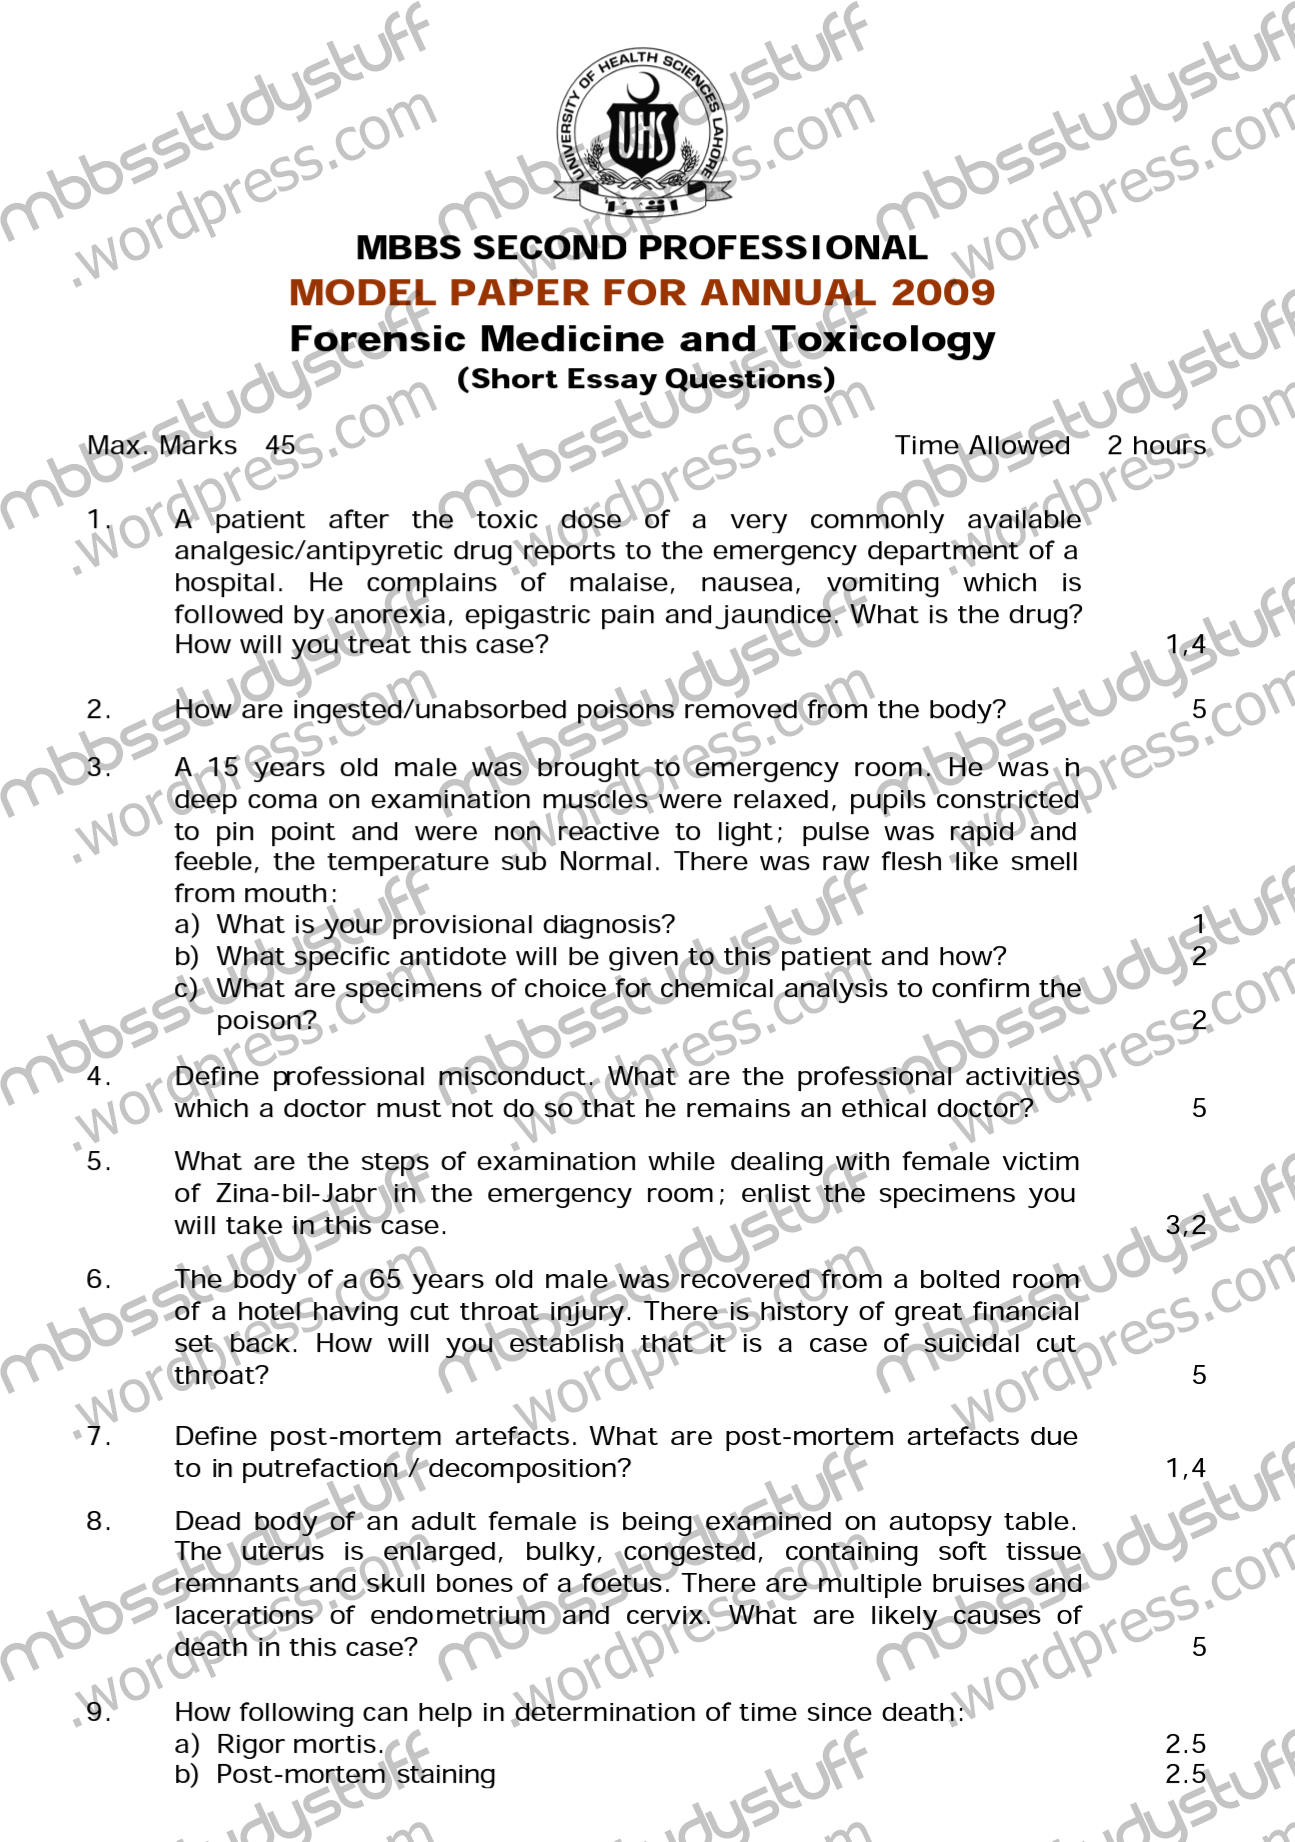 forensic toxicology research papers The journal forensic toxicology provides an international forum for publication of studies on toxic  (research articles, conference papers and reviews).